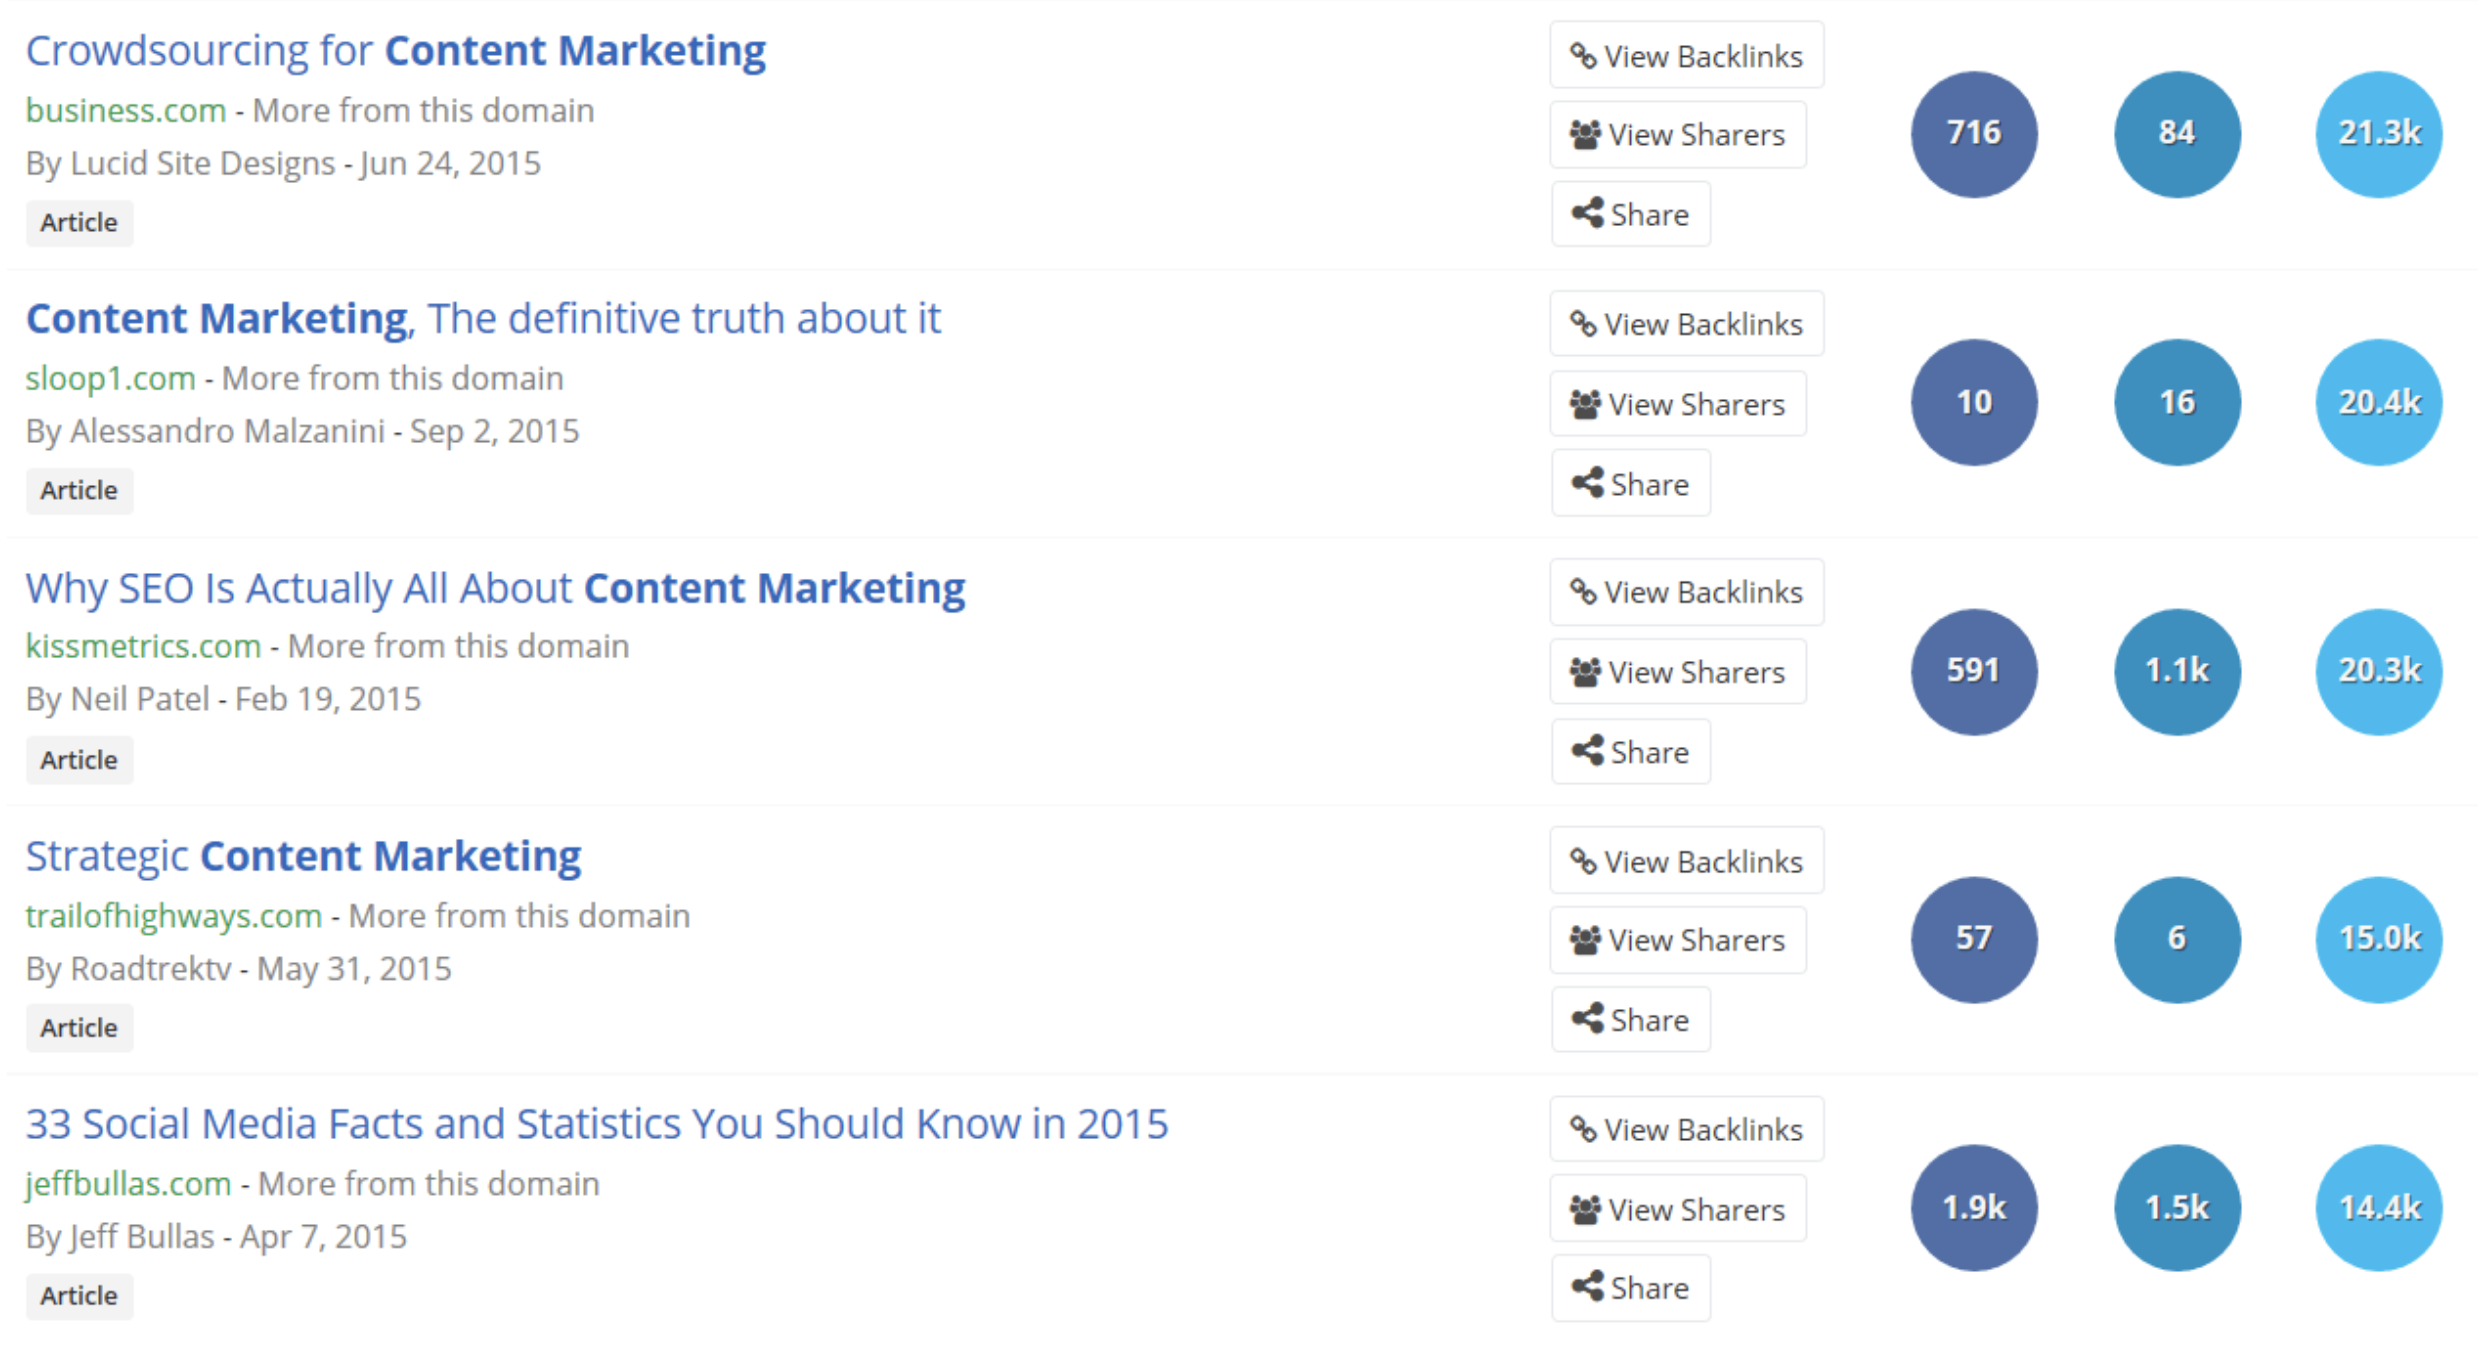 BuzzSumo Video SEO and Backlinking Search Results